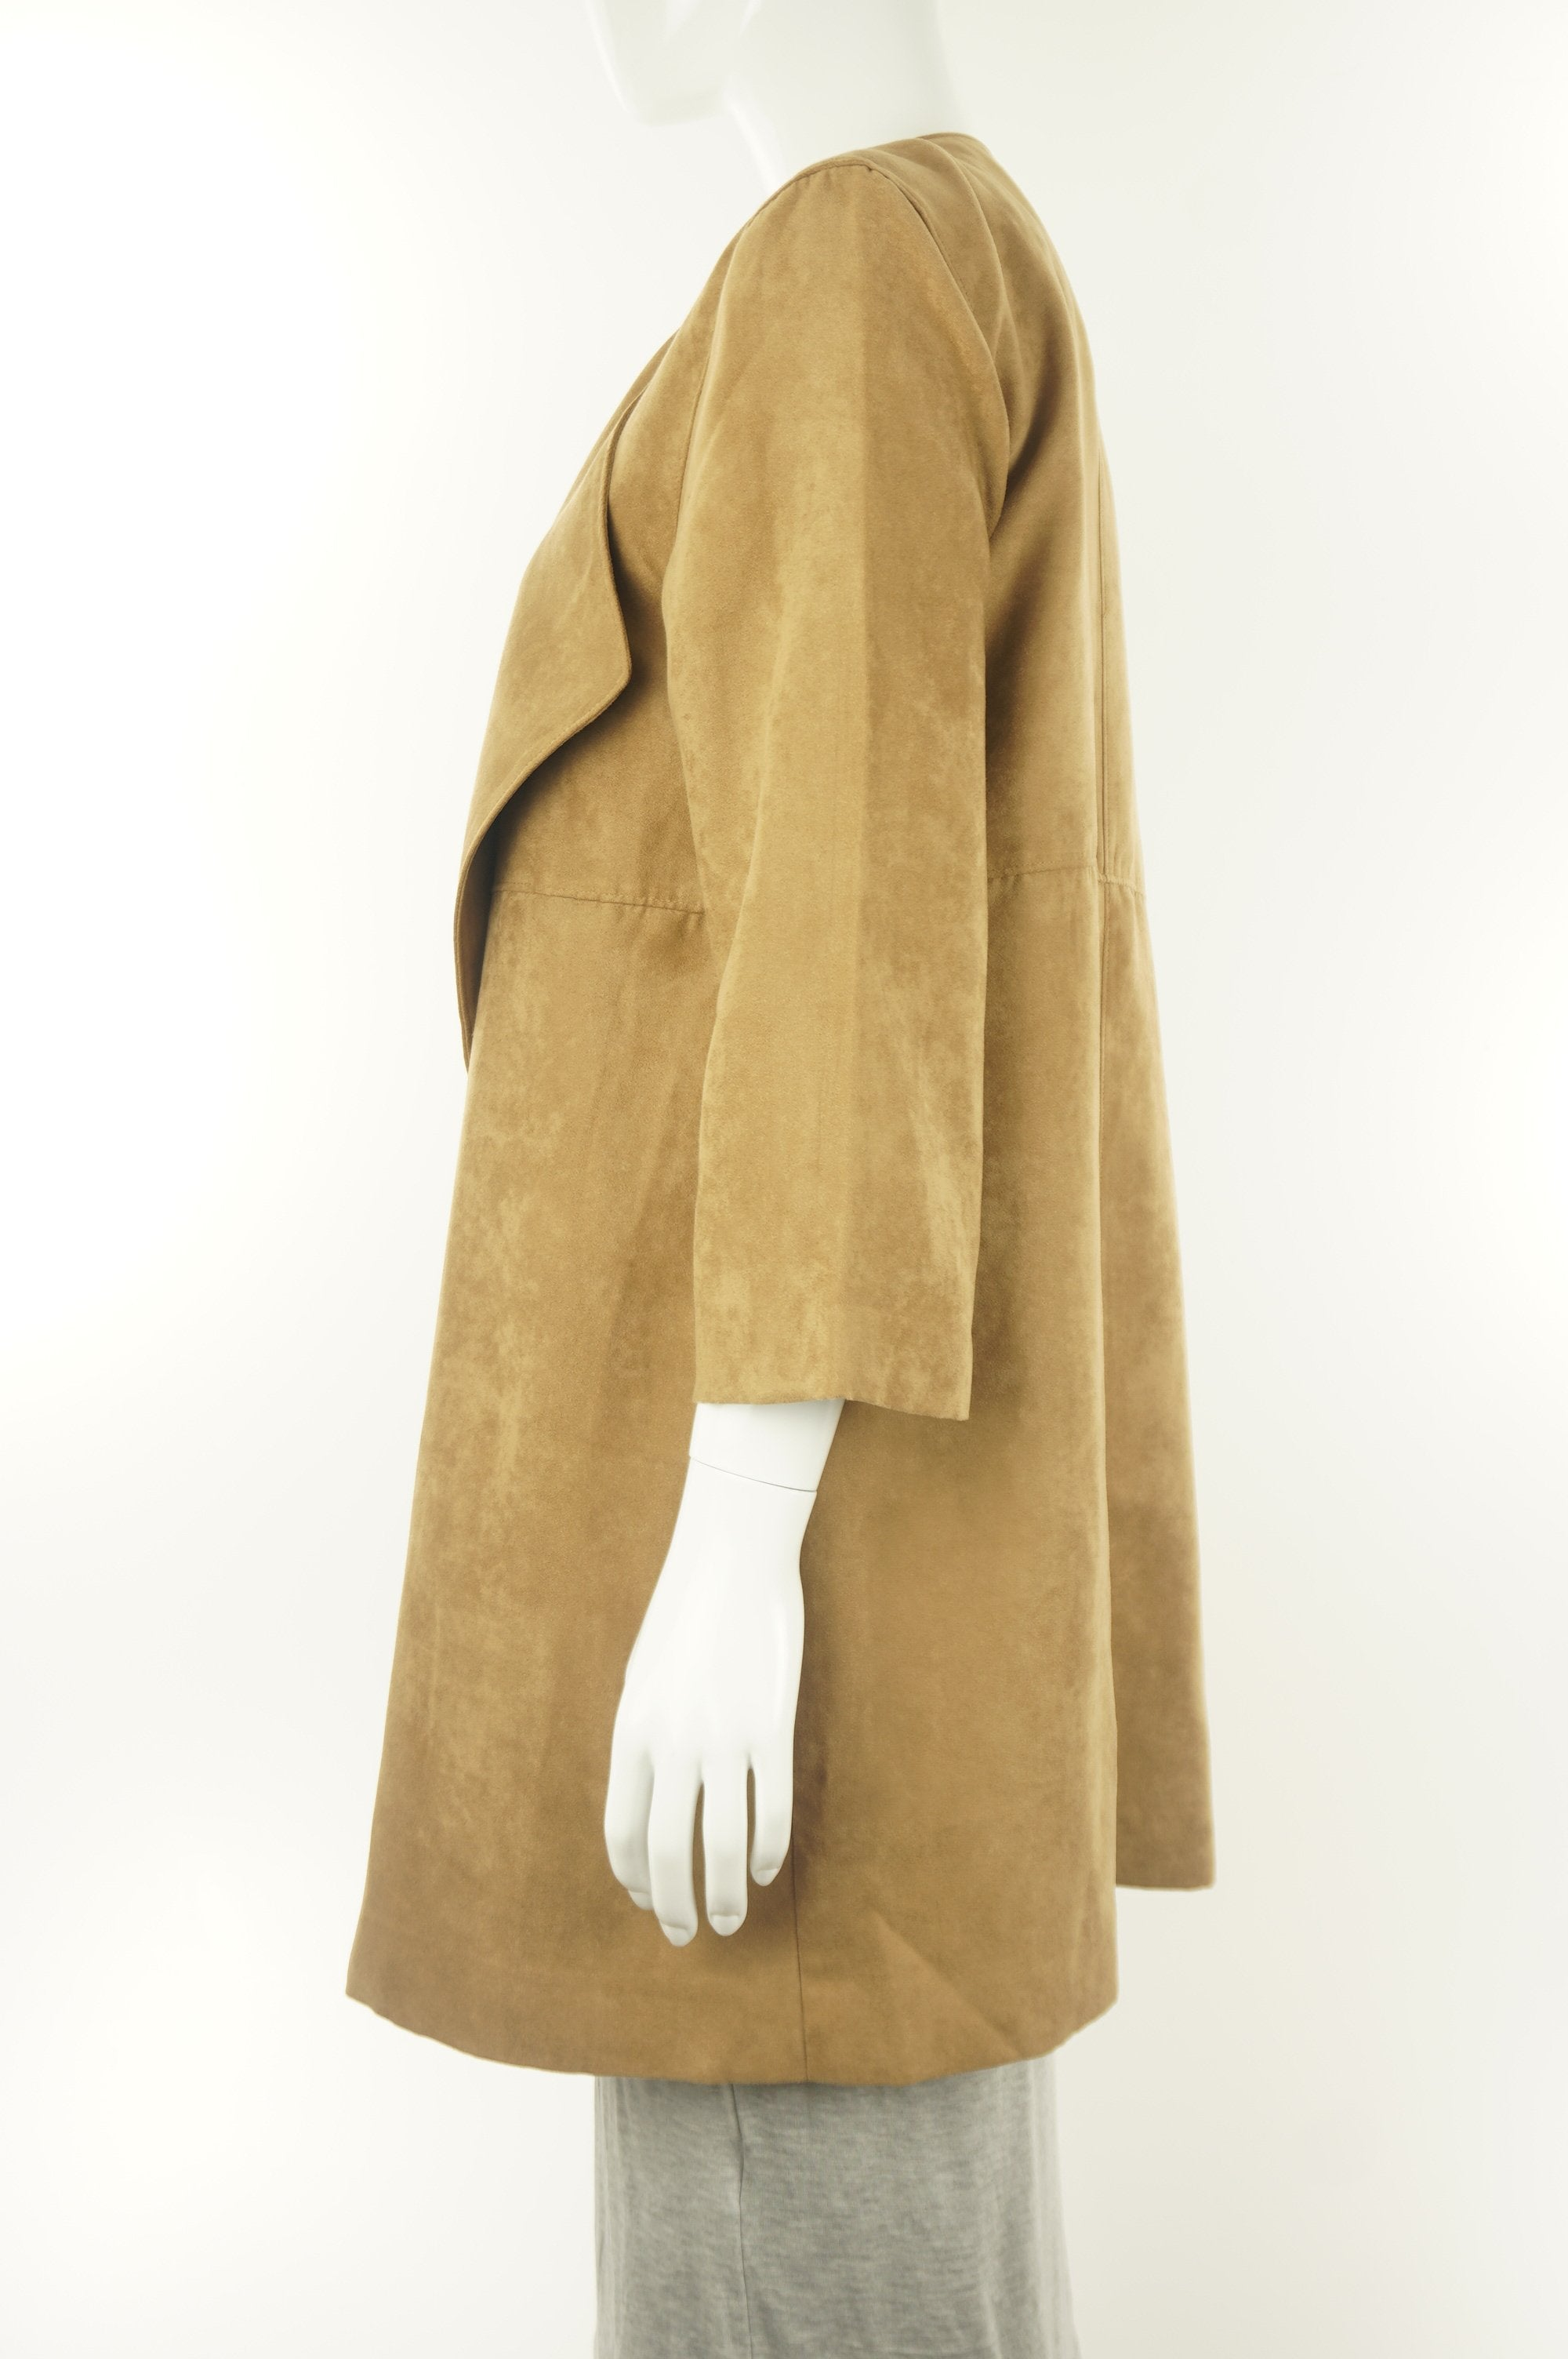 H&M Faux Suede Cardigan, The kind of cardigan you throw on super quickly before going out, just in case the weather is not as warm;), Brown, 100% polyester,